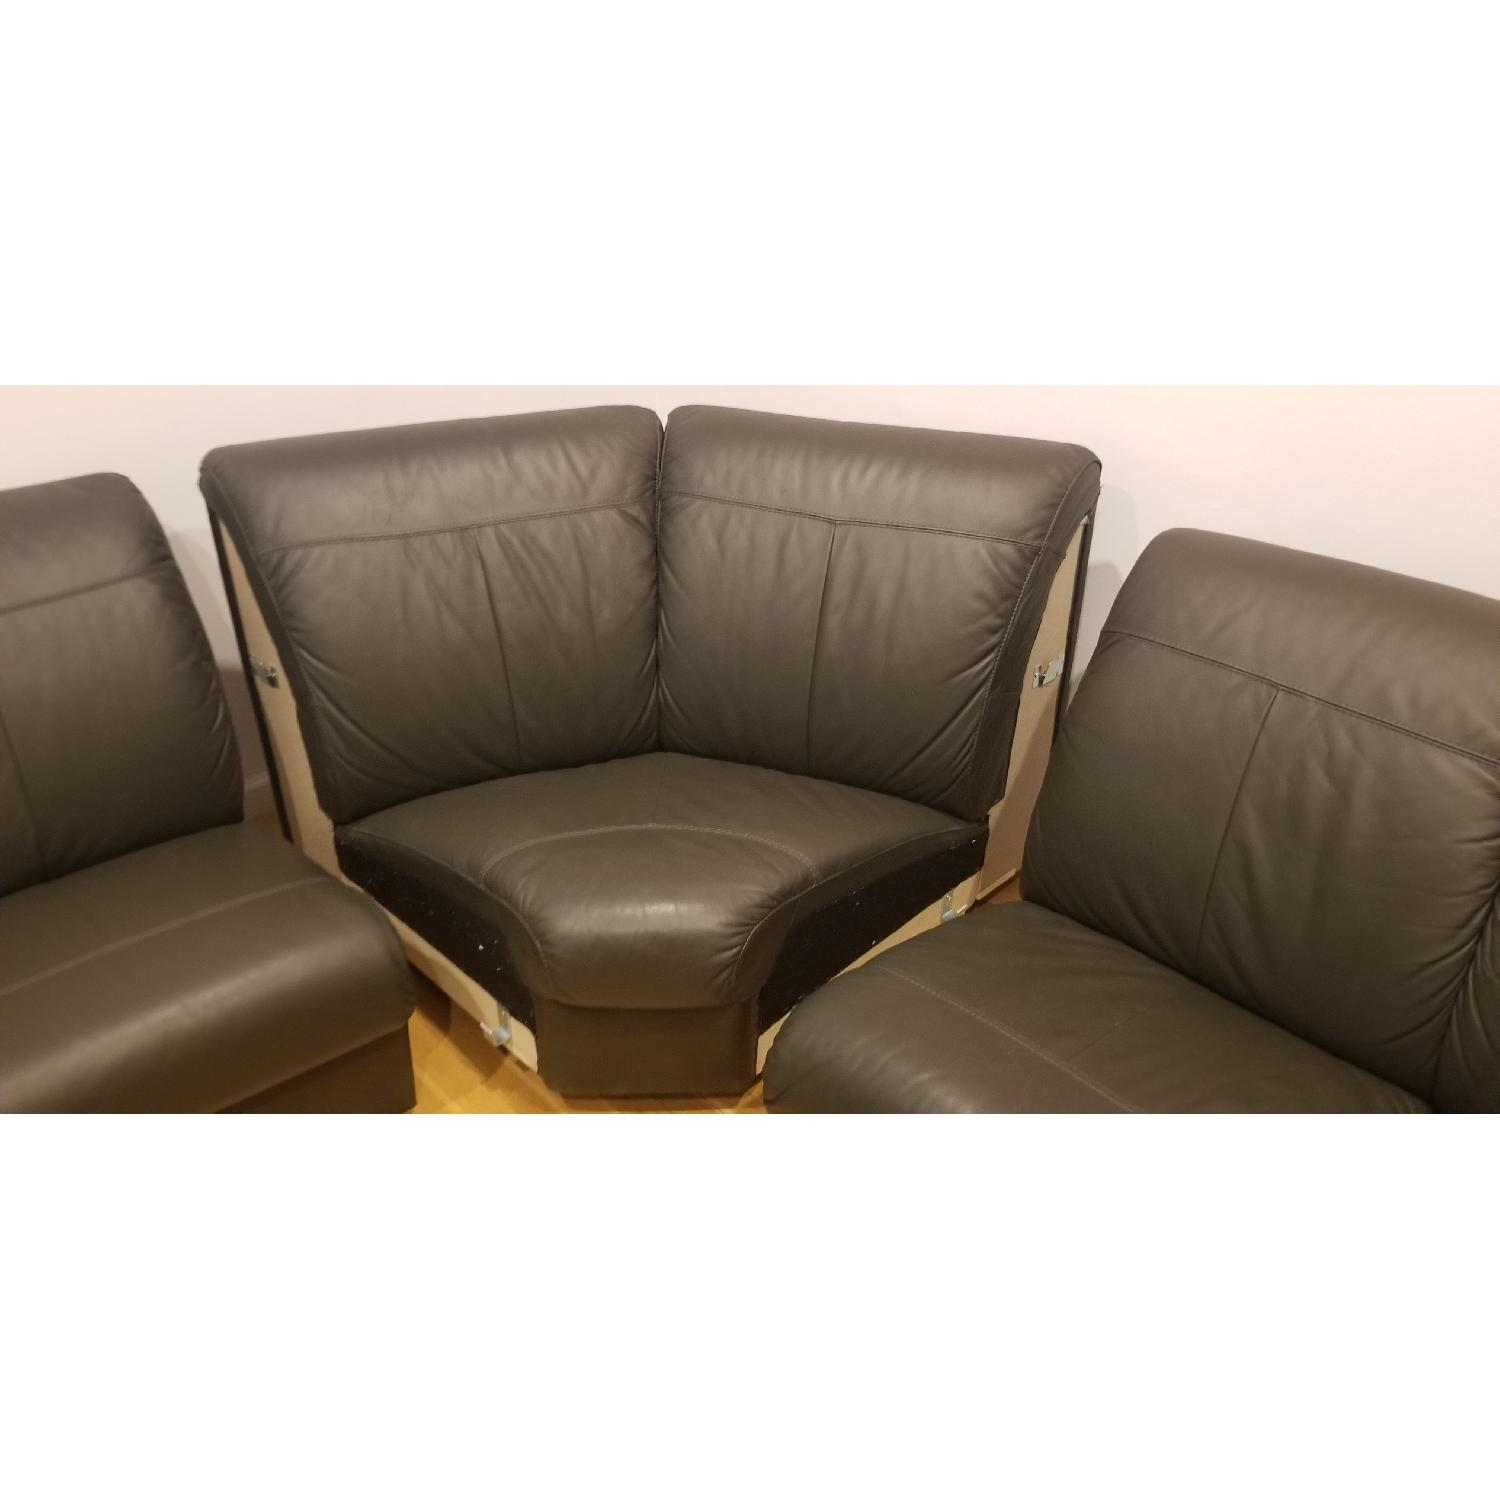 Ikea Timsfors Faux Leather Sectional Sofa - image-9